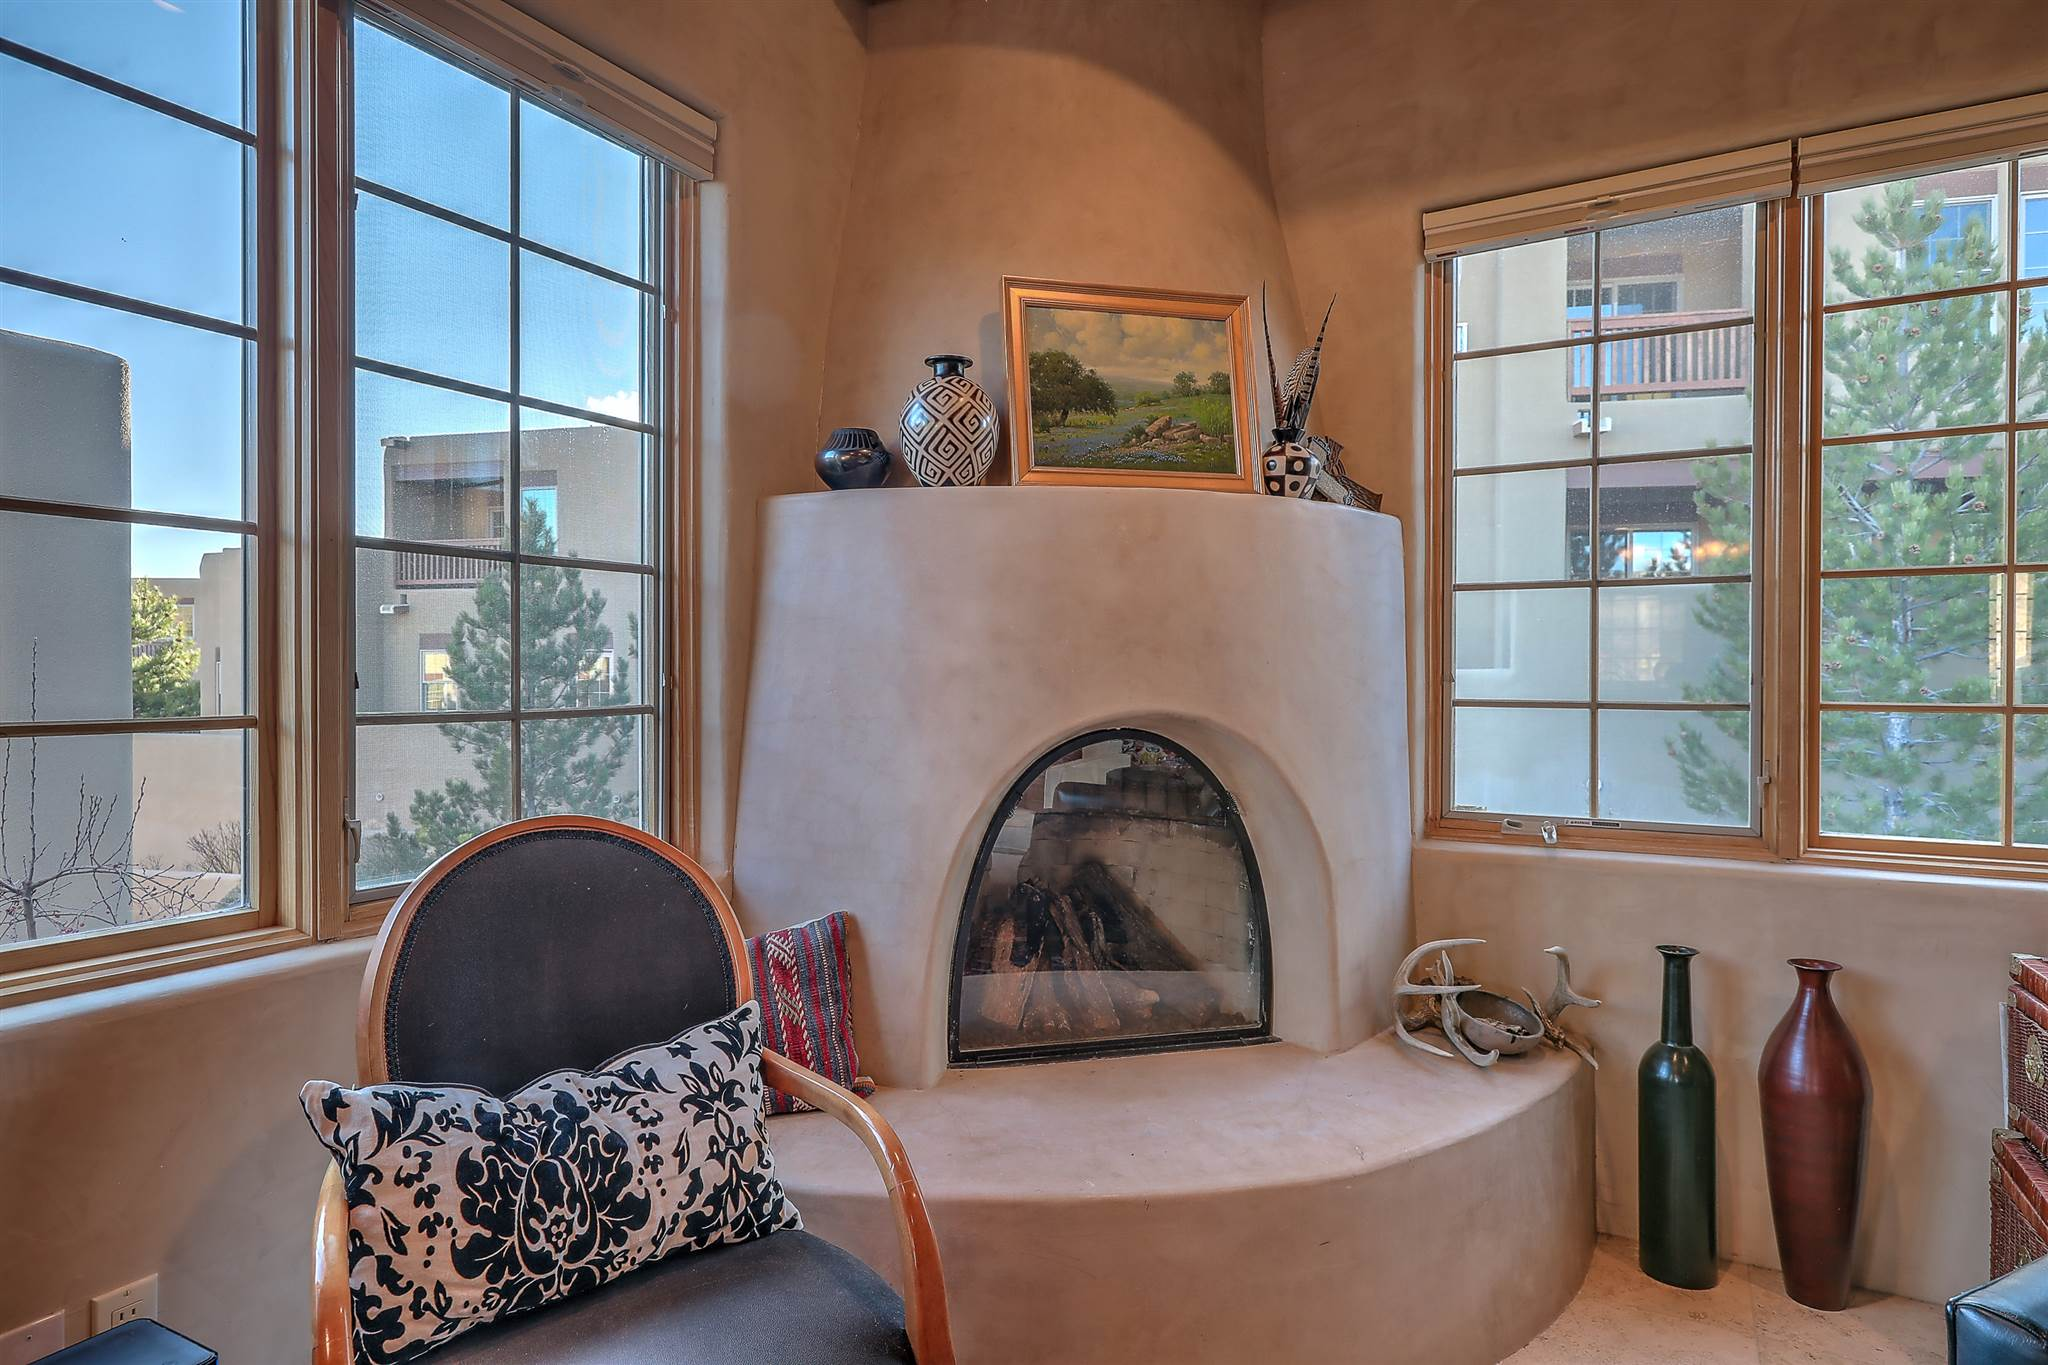 Hilltop Condo, walking distance to the Plaza from this Santa Fe two-story, two bedroom home with interior finishes of plastered walls, travertine floors, granite counters, and Jenn-Air appliances.  Vigas, nichos, and a gas kiva fireplace complement the second level.  Starry nights and open air views from larger deck are adjacent to the natural bio-diversity of Los Lovatos Arroyo.  Condo also has a smaller deck to the west and a Romeo and Juliet balcony to the south for plenty of fresh air and sunlight.  Property includes an attached one-car garage, stacked washer/dryer, with a roof-top heat-pump for forced air heat and AC.  Both bedrooms and two baths are at ground level. Vigas, nichos, and a gas kiva fireplace complement the upper level with kitchen, dining, and living rooms along with a half-bath.  Located just northeast of historic Santa Fe, the Rosario Hill Compound combines the pleasures of quiet, high-altitude, New Mexico living with the conveniences of location and proximity to museums, galleries, shops, and restaurants.  Nearby Fort Marcy Recreation Complex will offer a wide range of exercise facilities and fitness classes.  This hilltop location in Rosario Hill Compound is close to historic venues of classical and contemporary music, dance, lectures, and international programs.